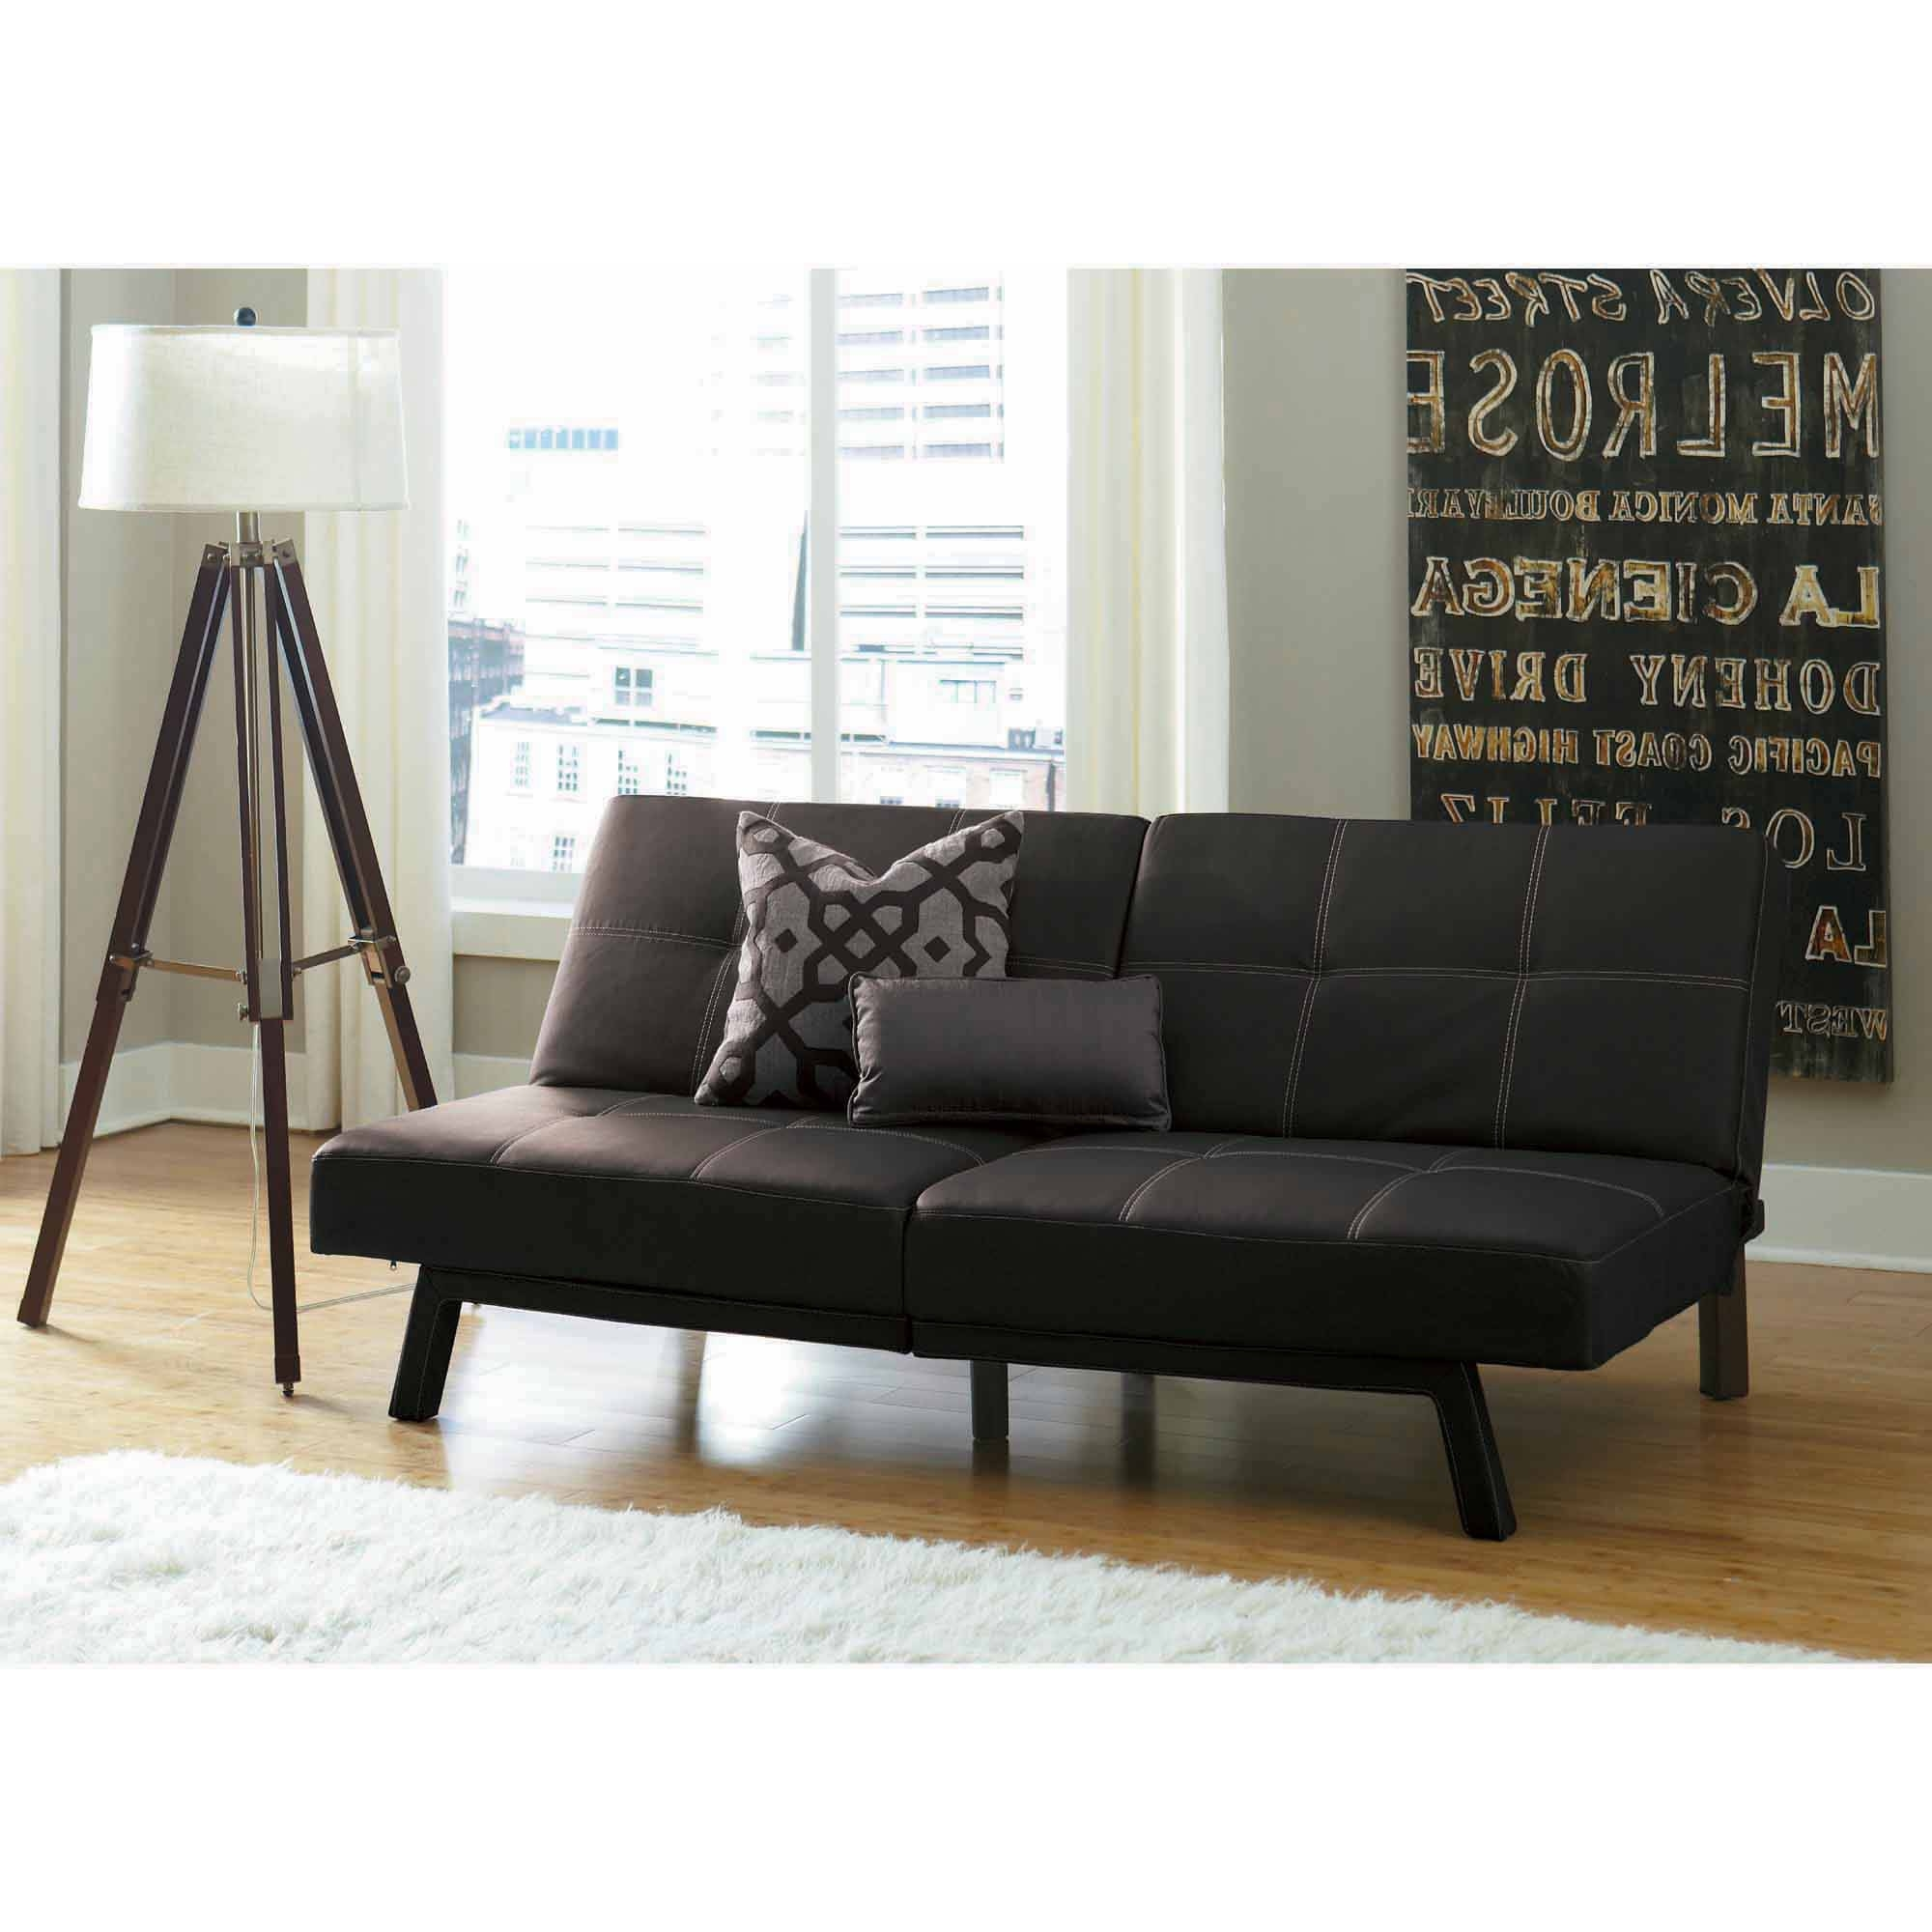 Sofas Sectionals Stylish Big Lots Sofa Sleeper Big Lots Futon Throughout Big Lots Sofa Bed (Image 15 of 15)